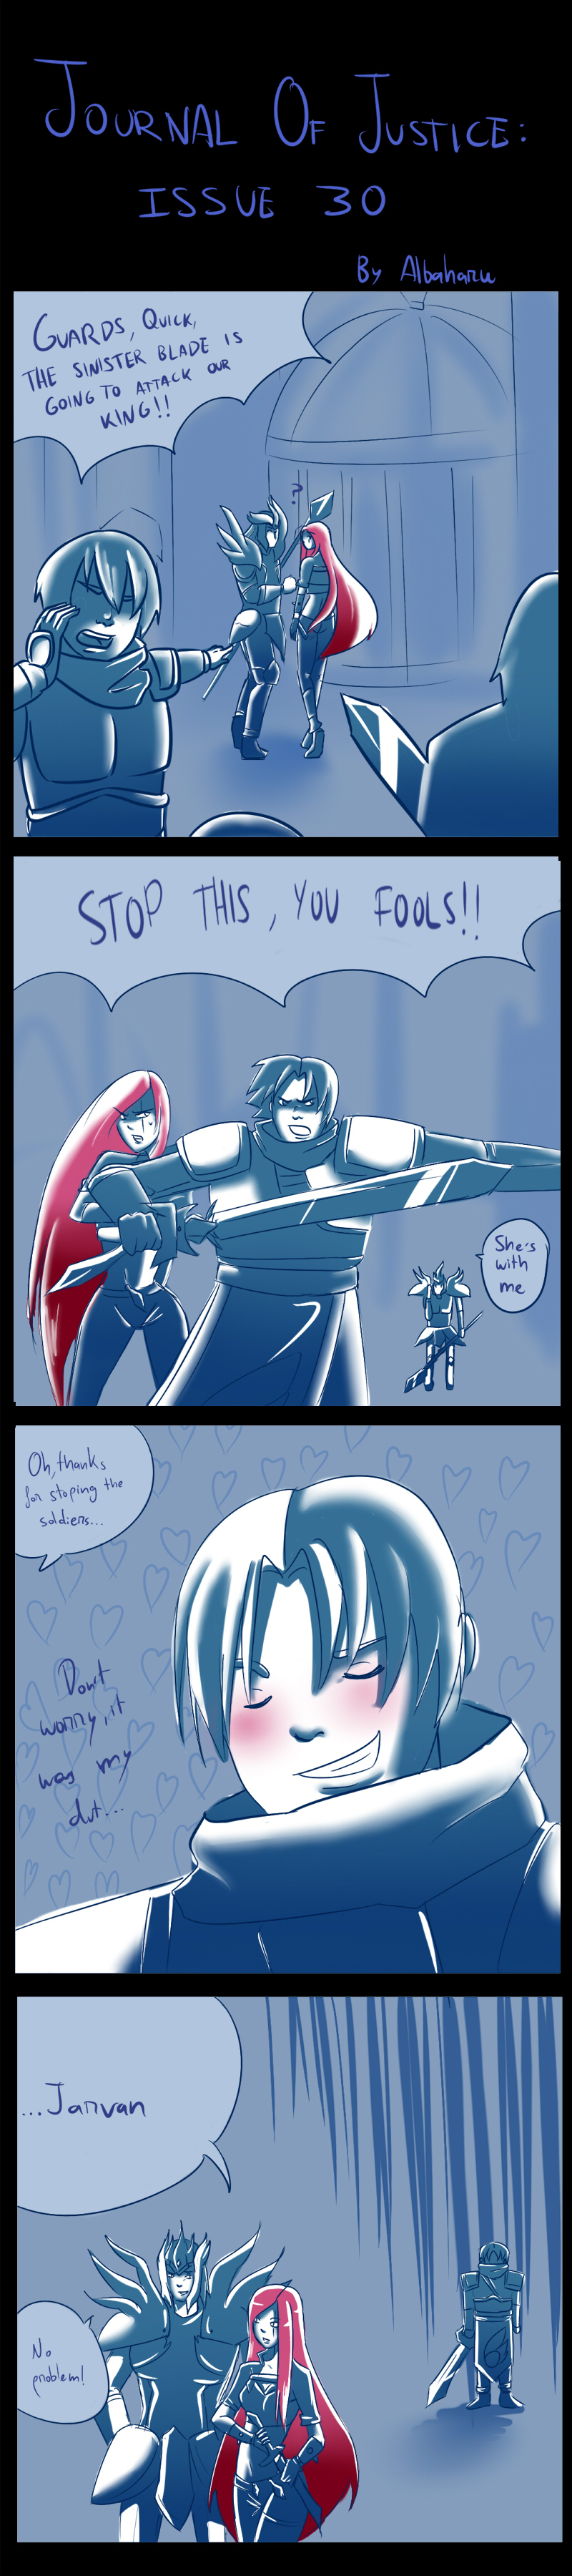 LoL- Its my duty to protect the innocent by Albaharu